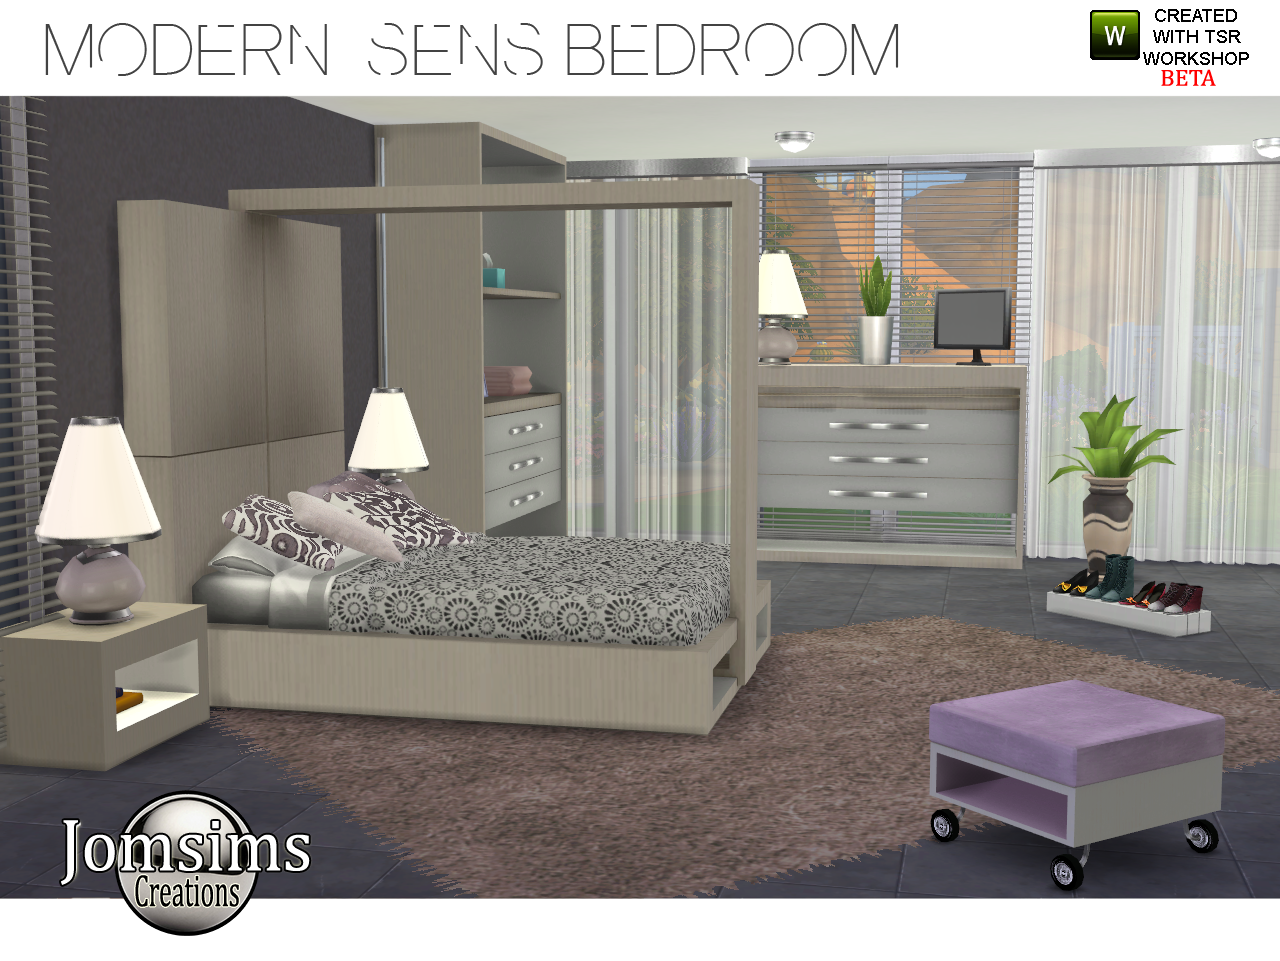 Living room curtains with rings - My Sims 4 Blog Modern Sens Bedroom Set By Jomsims